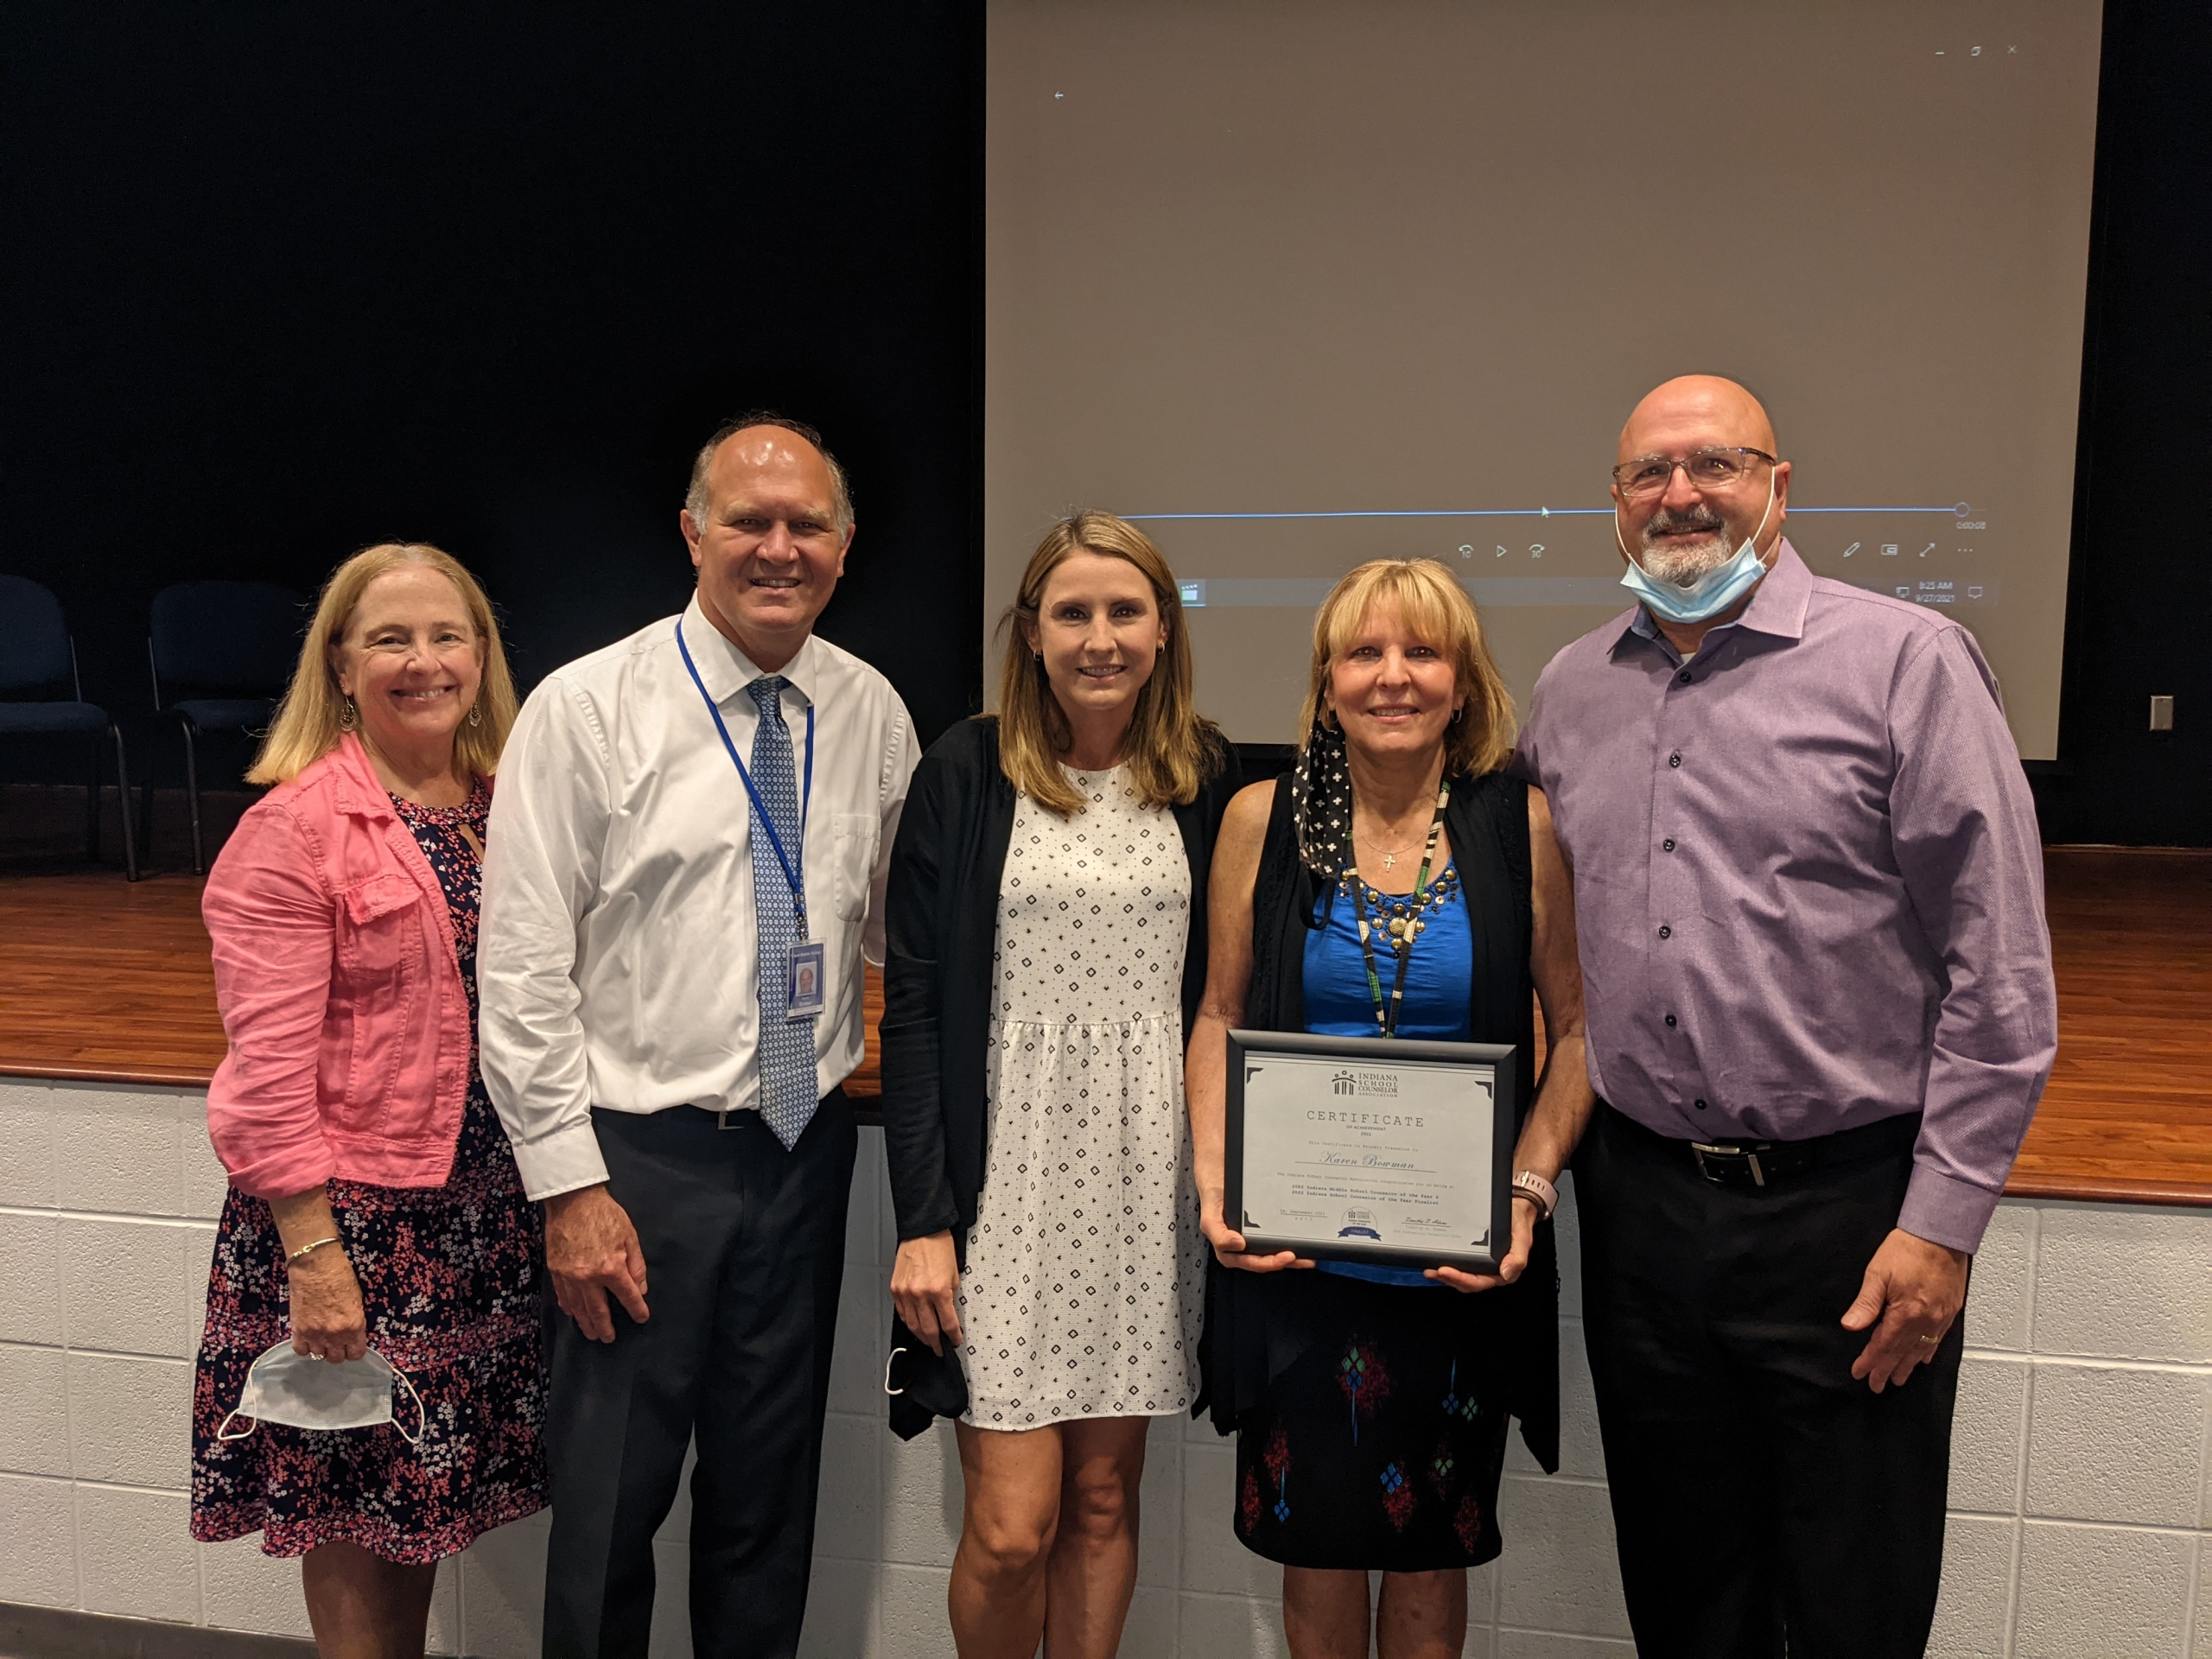 Karen Bowman, Clark MS was recently recognized by the Indiana School Counselor Association as Middle School Counselor of the Year. Congratulations Karen!